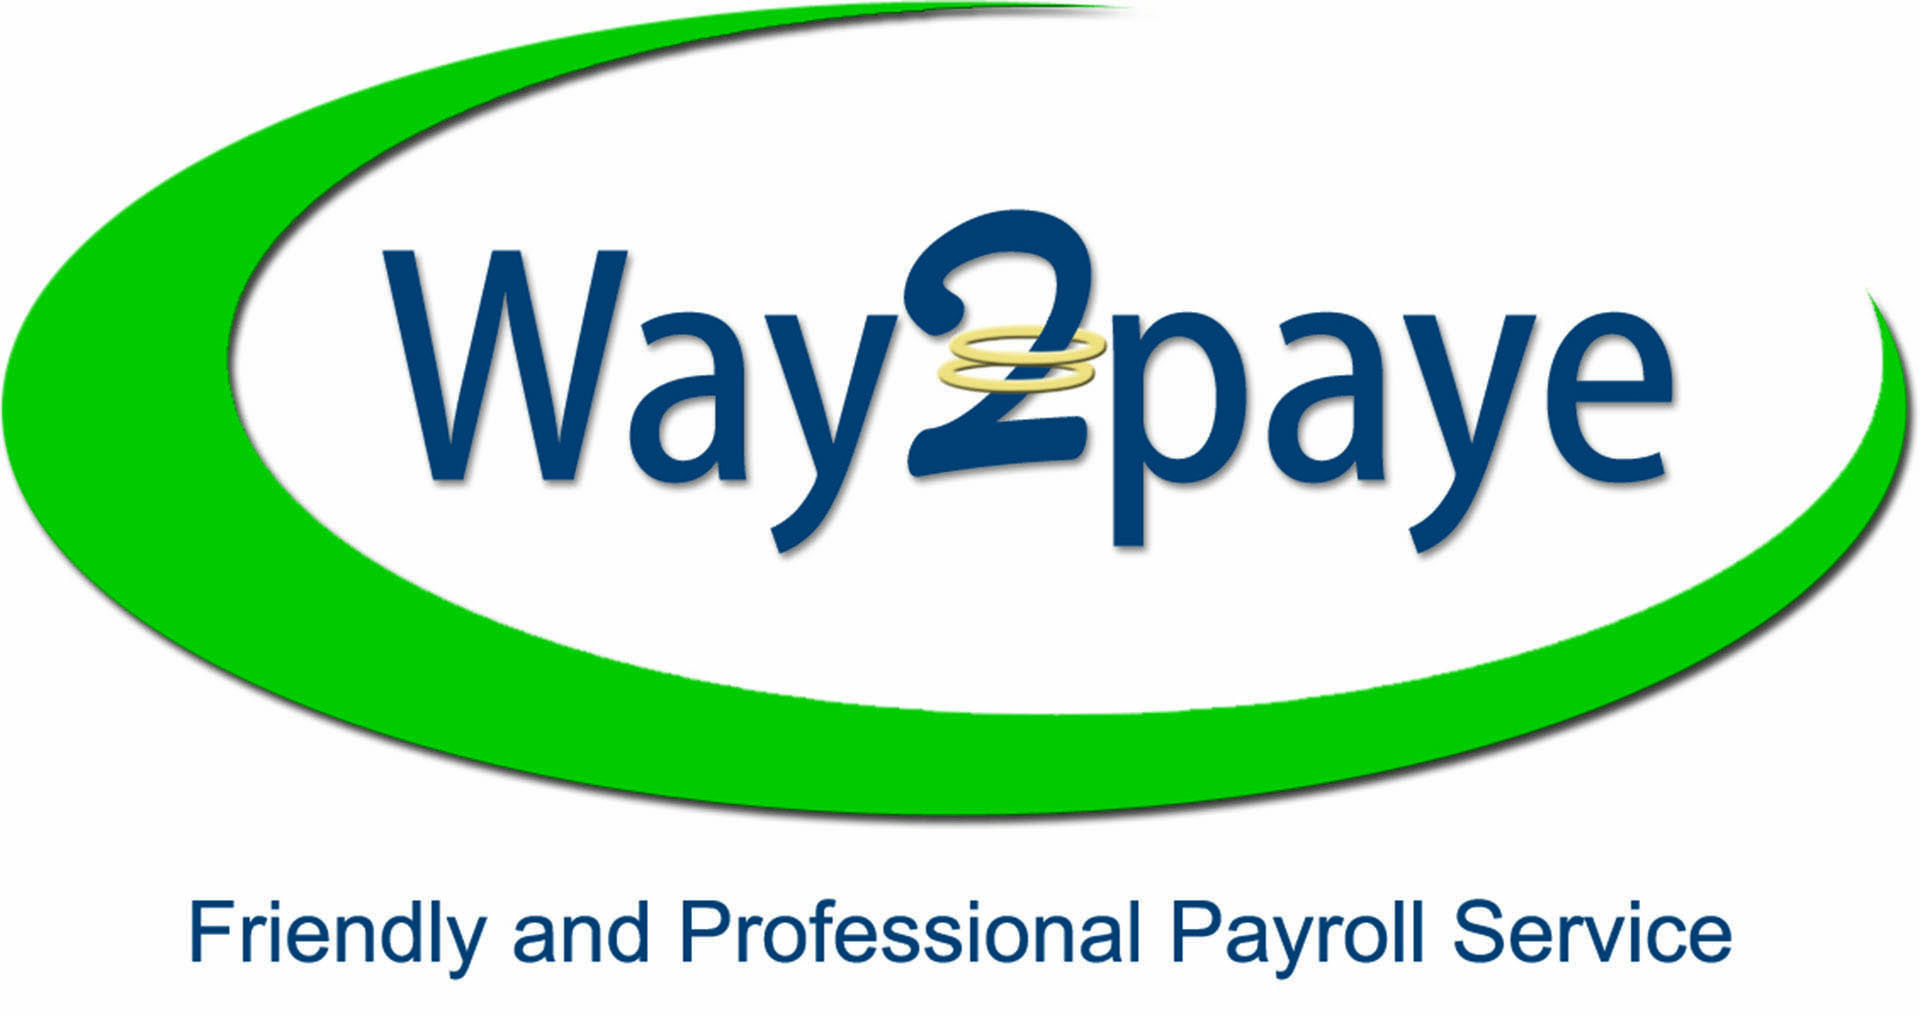 Way2paye's logo